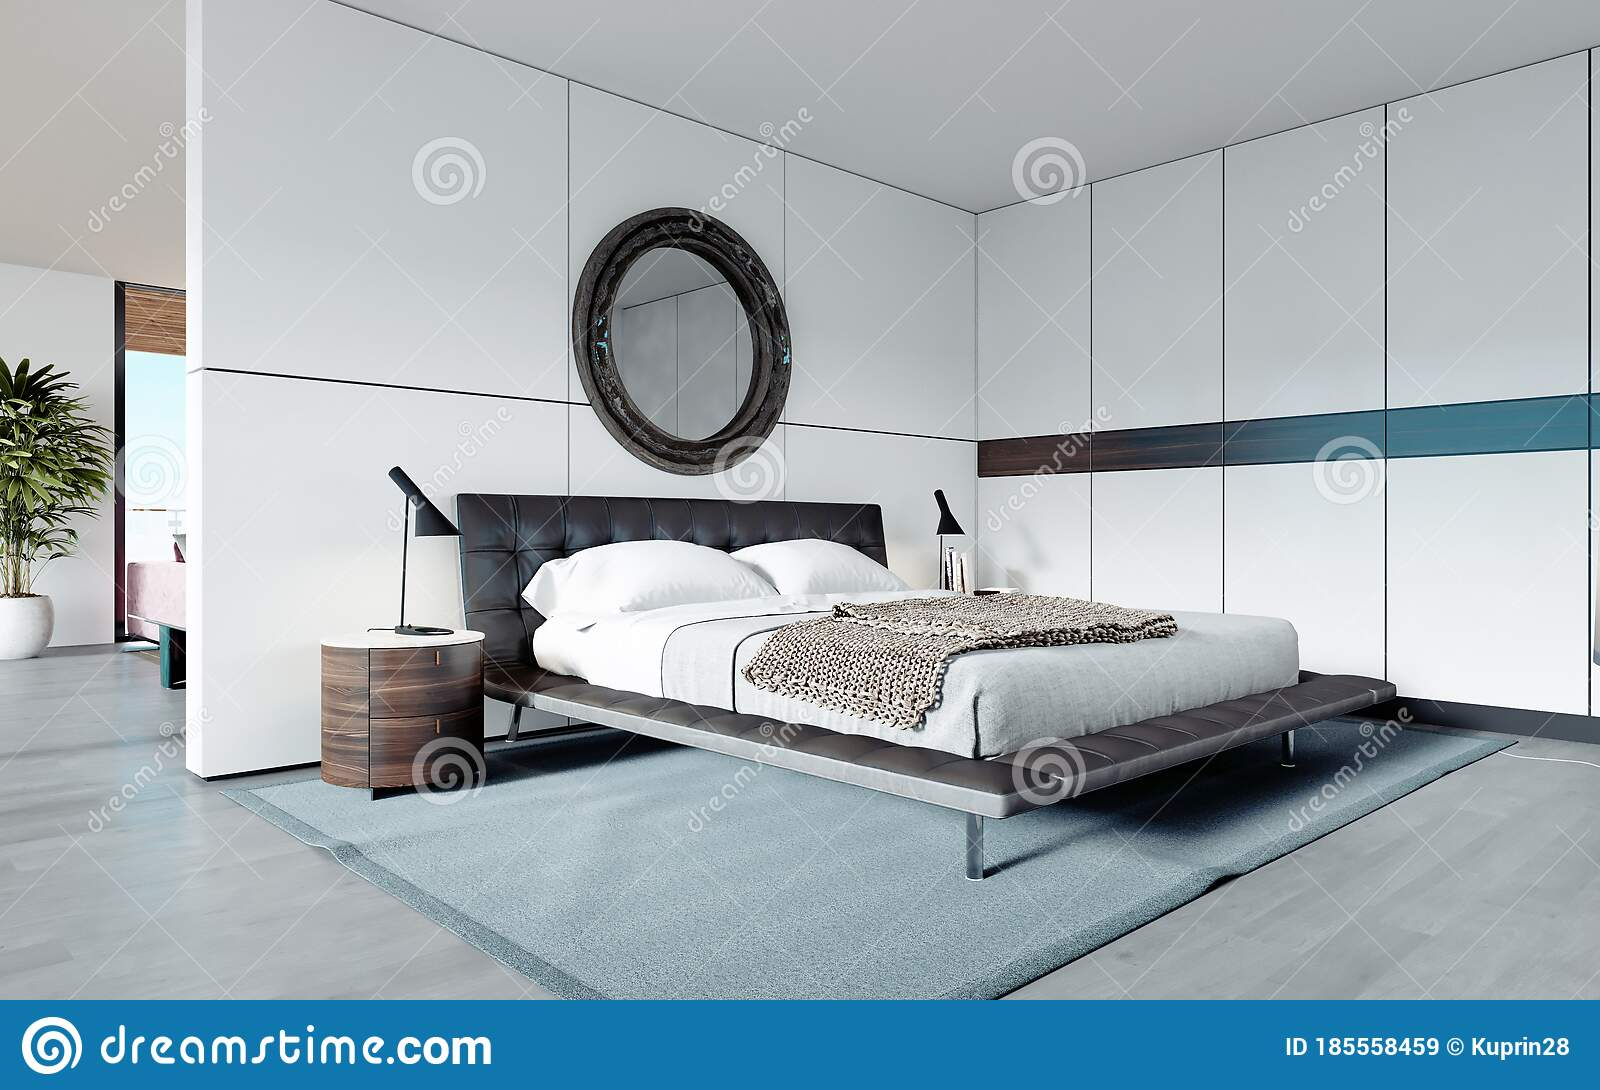 Modern Designer Bedroom In Scandinavian Style Wardrobe Round Mirror Panoramic Window From Floor To Ceiling Stock Illustration Illustration Of Accommodation Inside 185558459